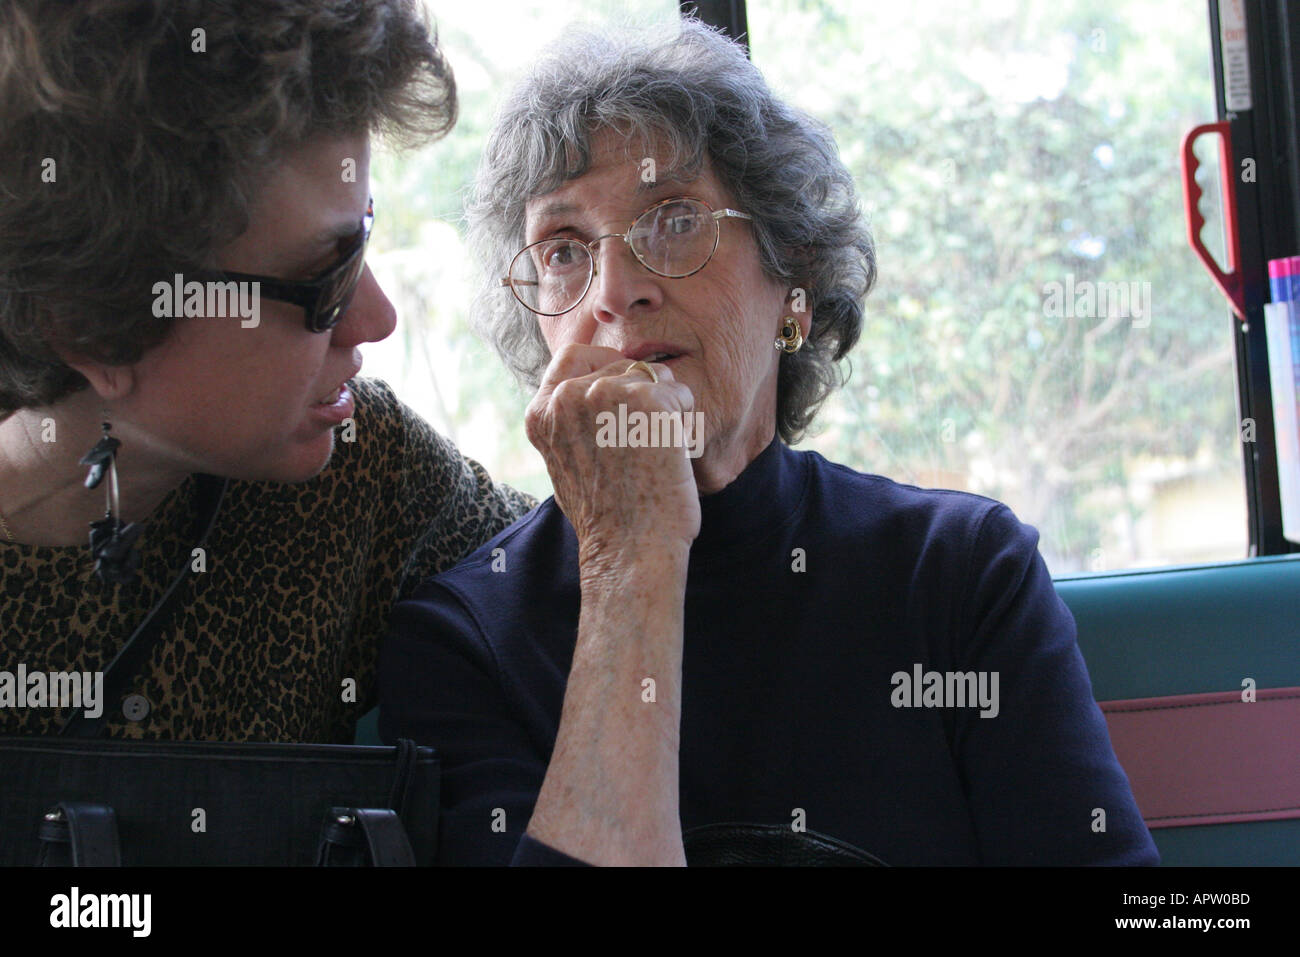 98298b69af6 Miami Beach Florida Electrowave public bus passengers senior mother adult  daughter - Stock Image